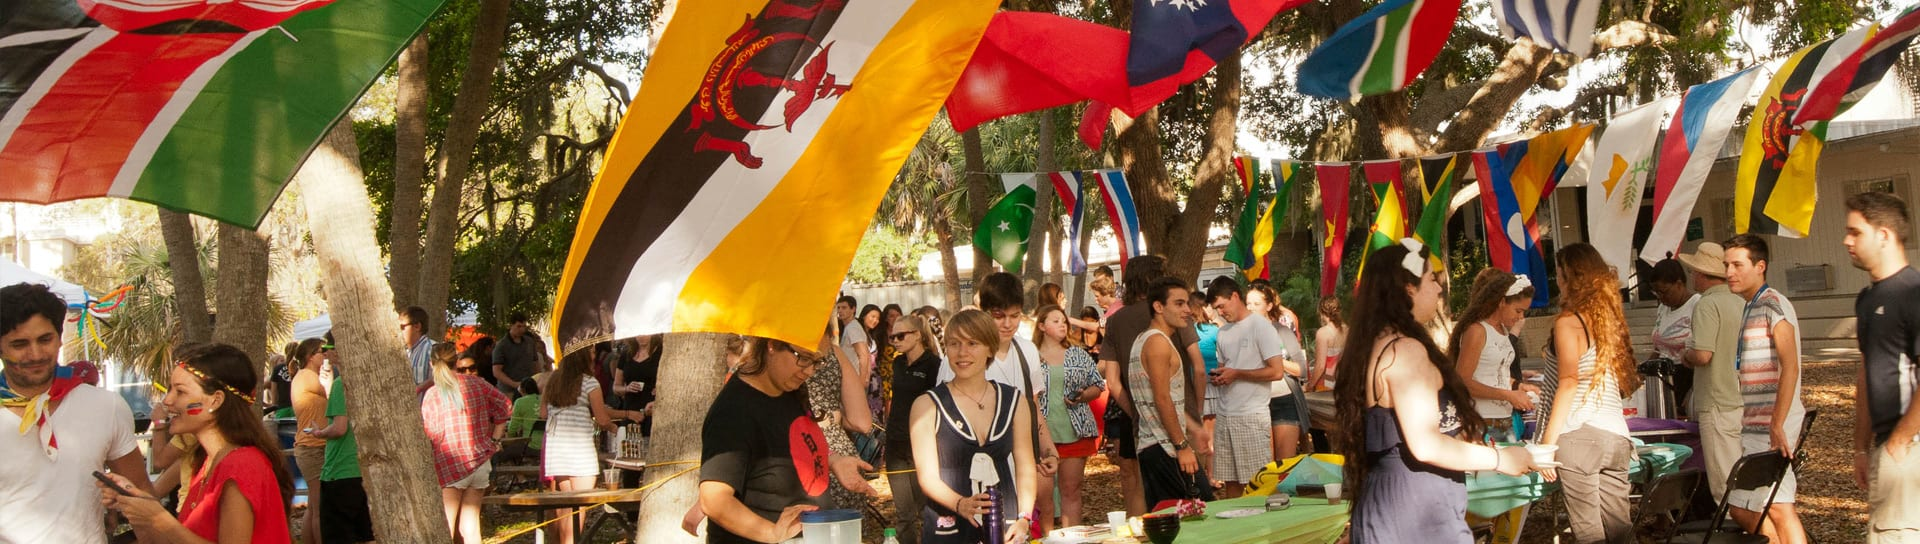 International students at Festival of Cultures